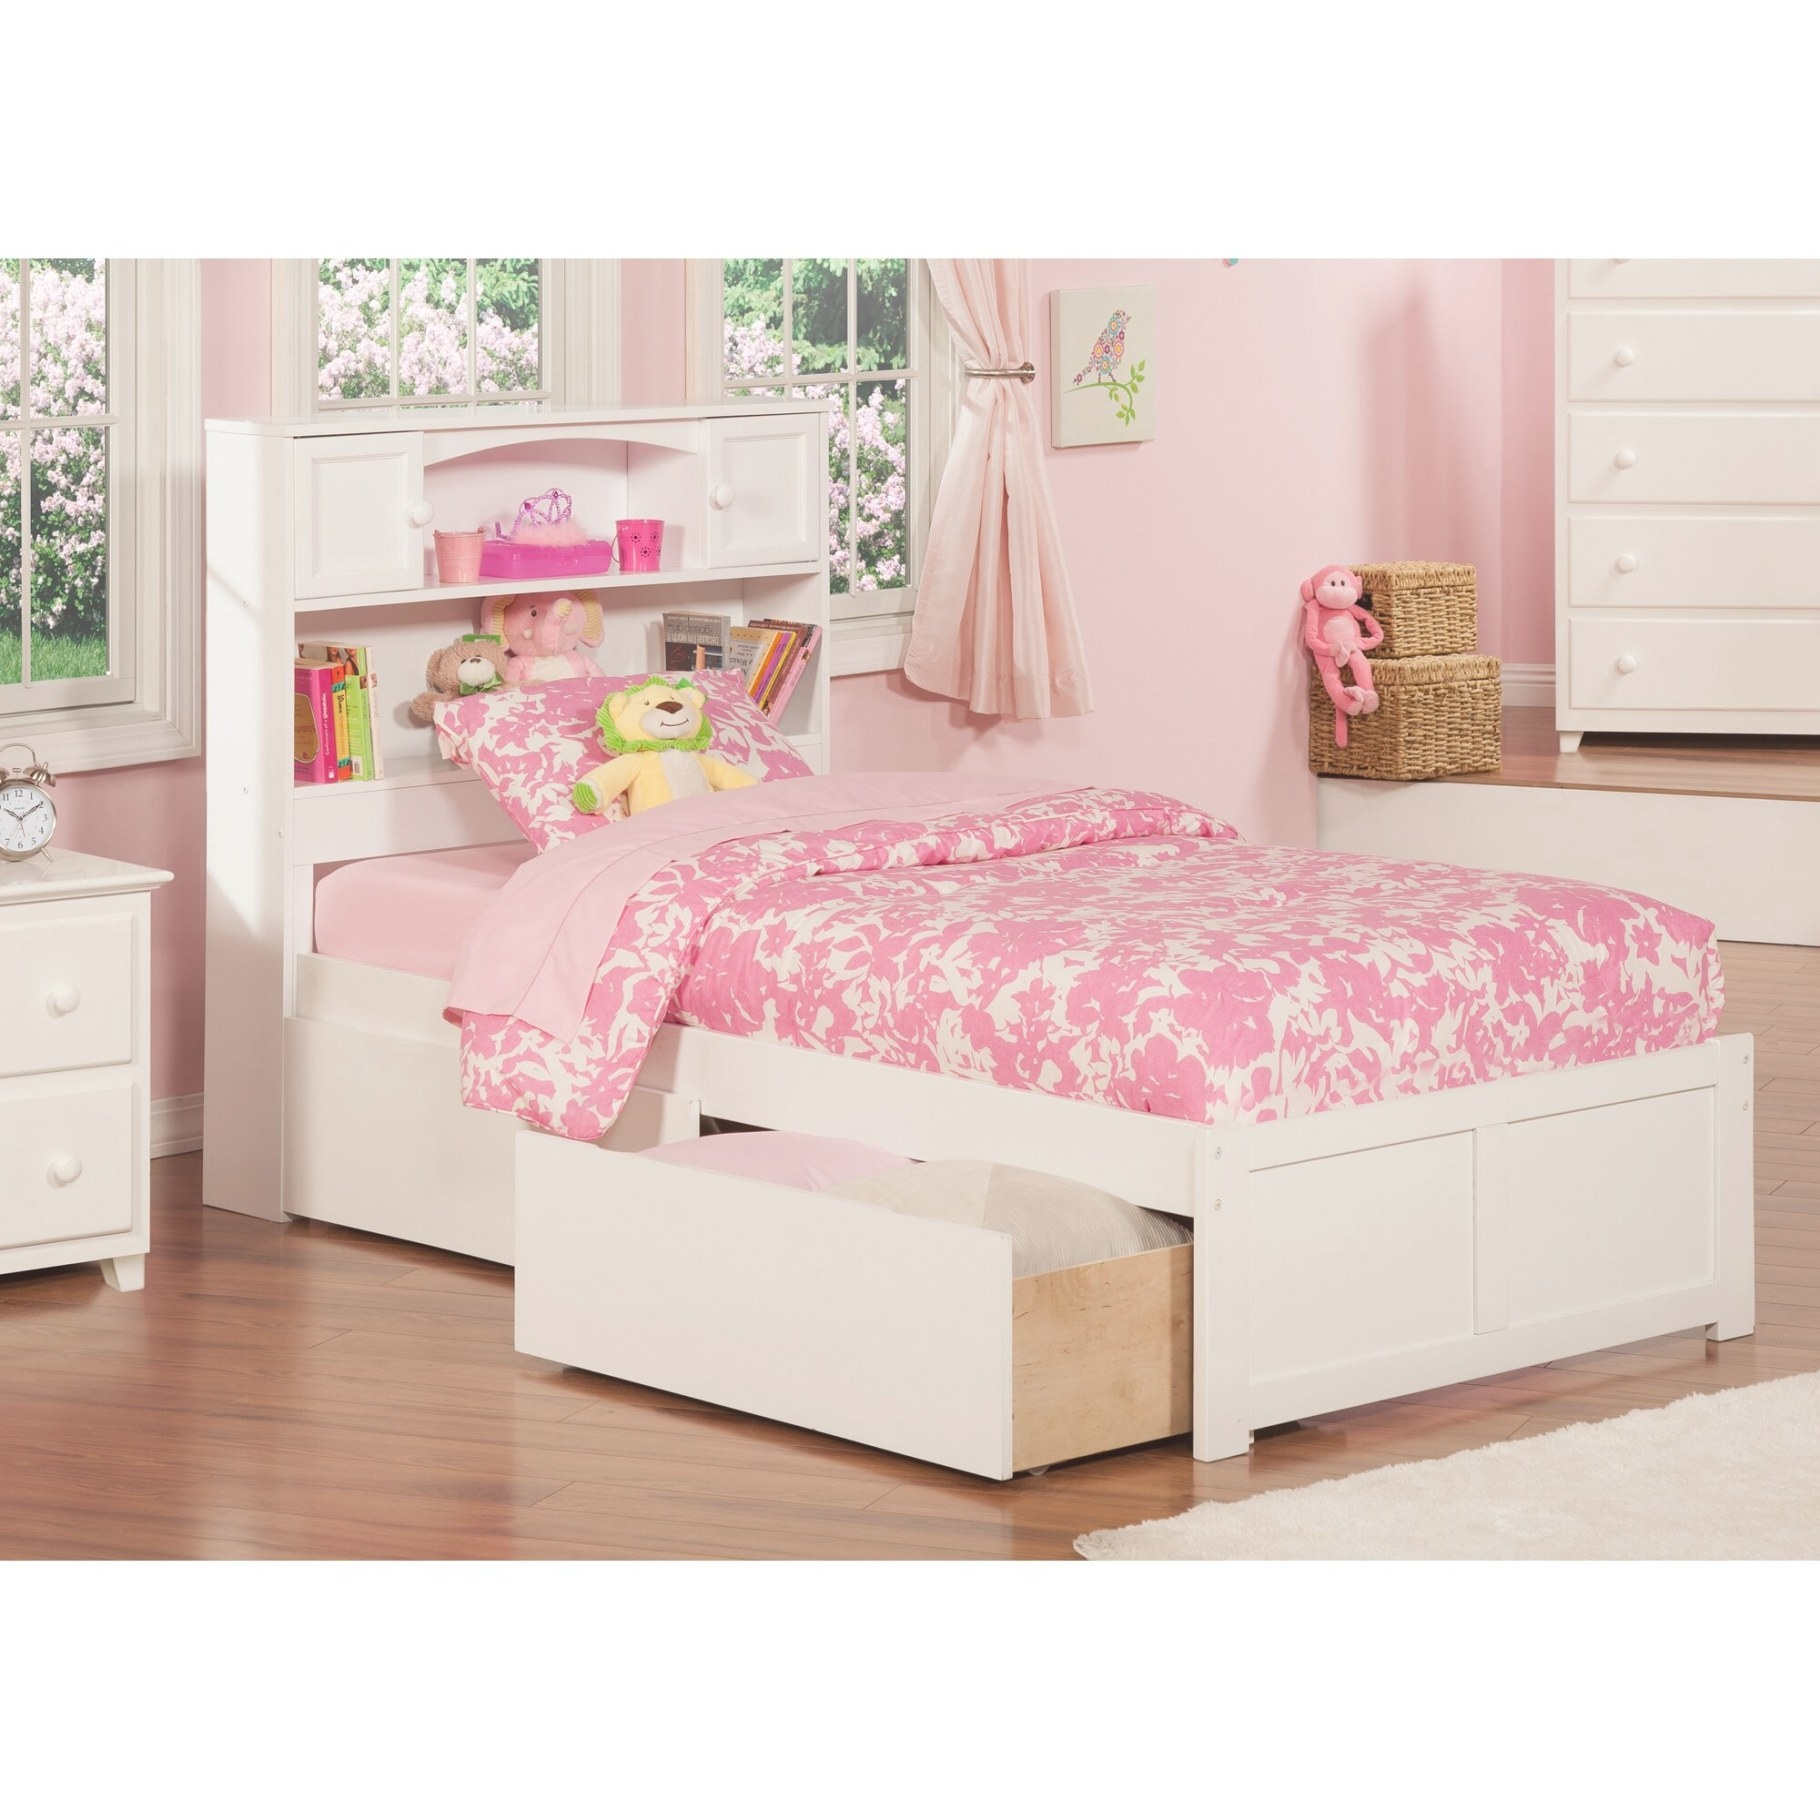 Atlantic Furniture Newport Extra Long Twin Platform Bed regarding Extra Long Twin Bed